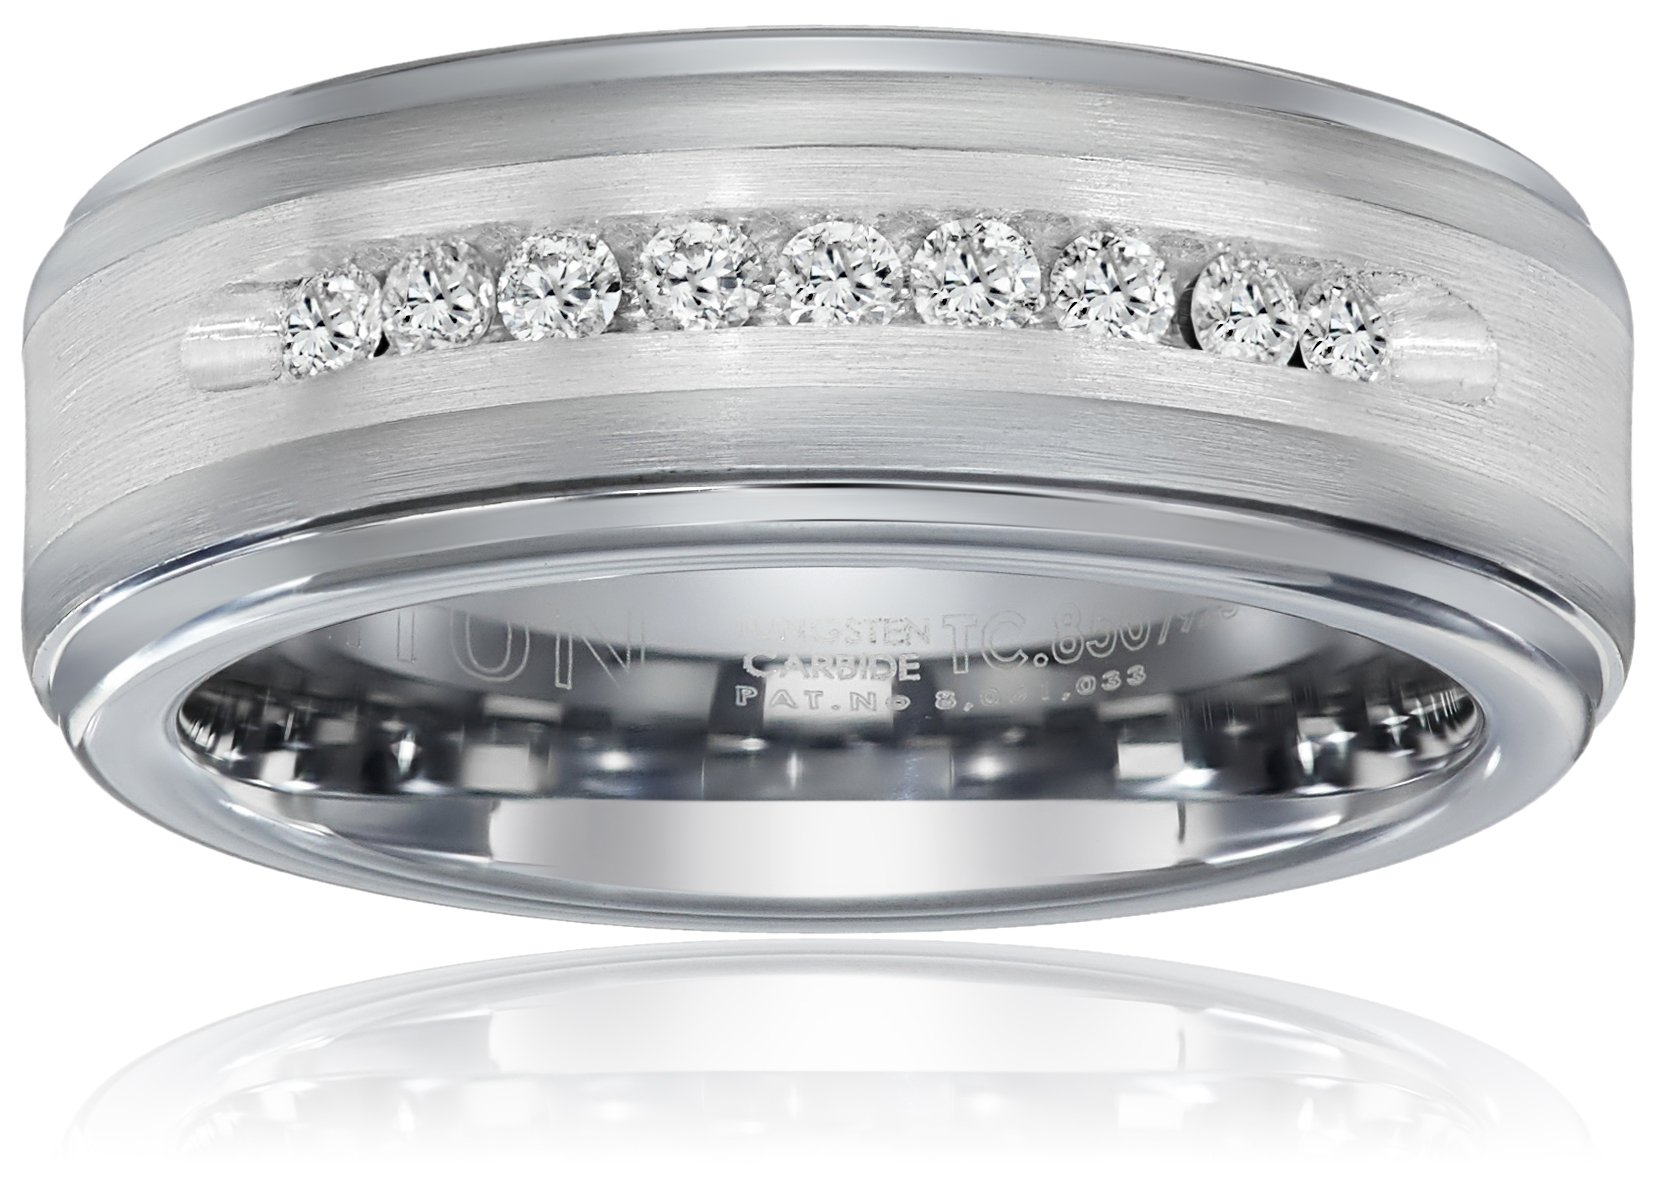 Triton Men's Tungsten and Silver 8mm Comfort Fit Diamond Wedding Band (1/4cttw, I-J Color), Size 9.5